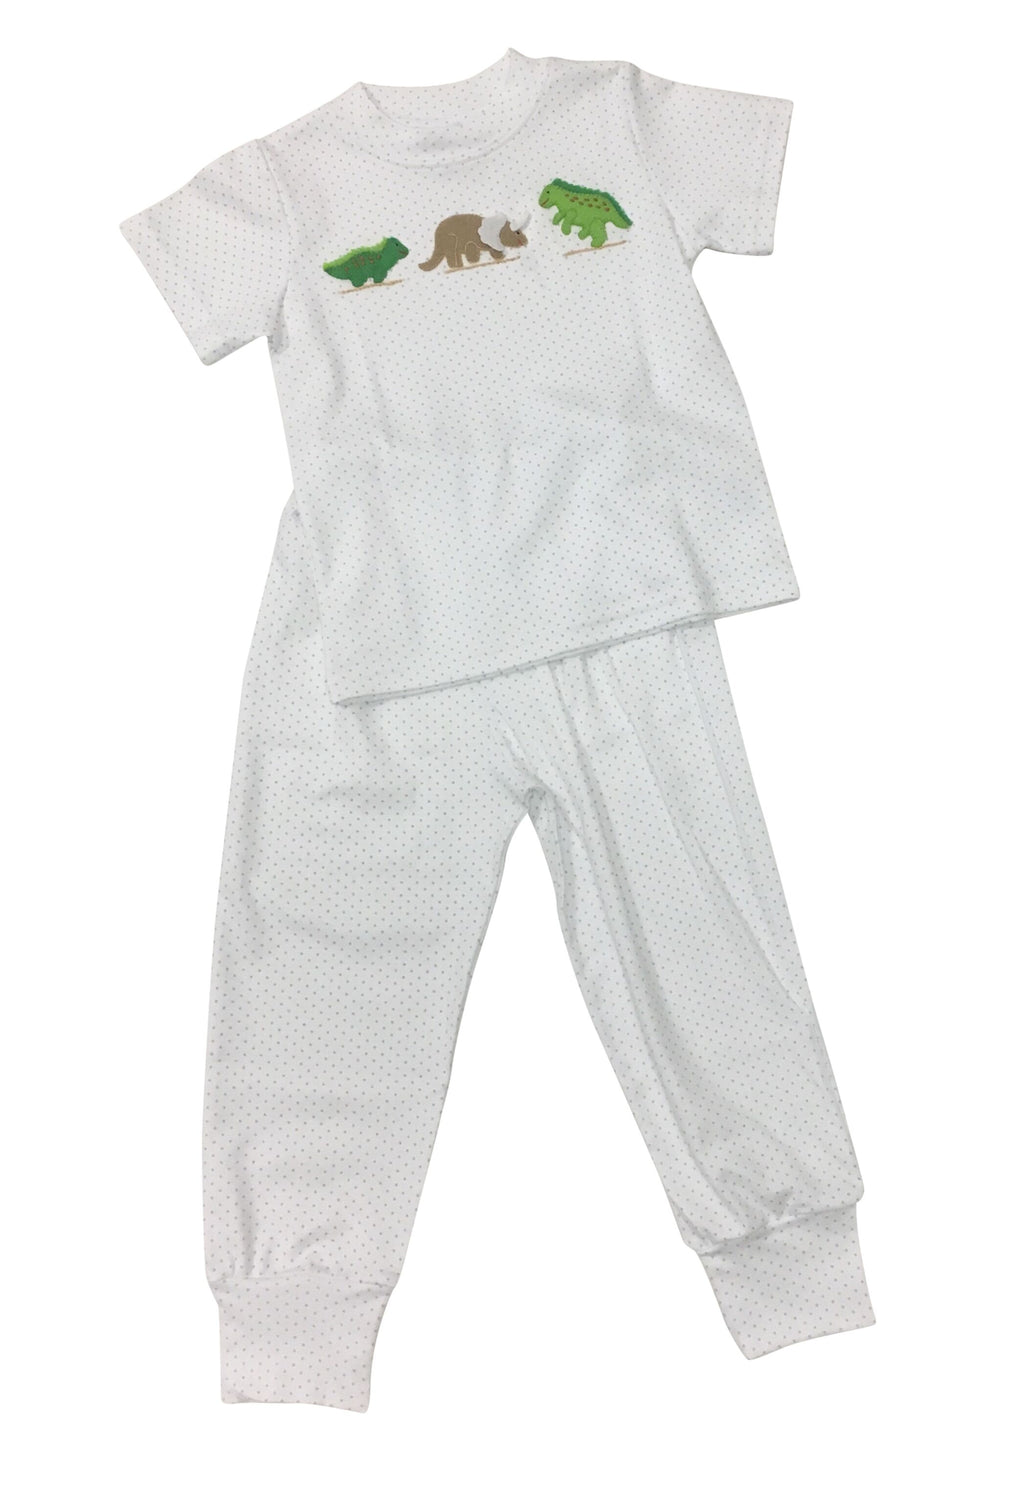 Boy Knit Jammies - Blue Dot Dinos - Born Childrens Boutique